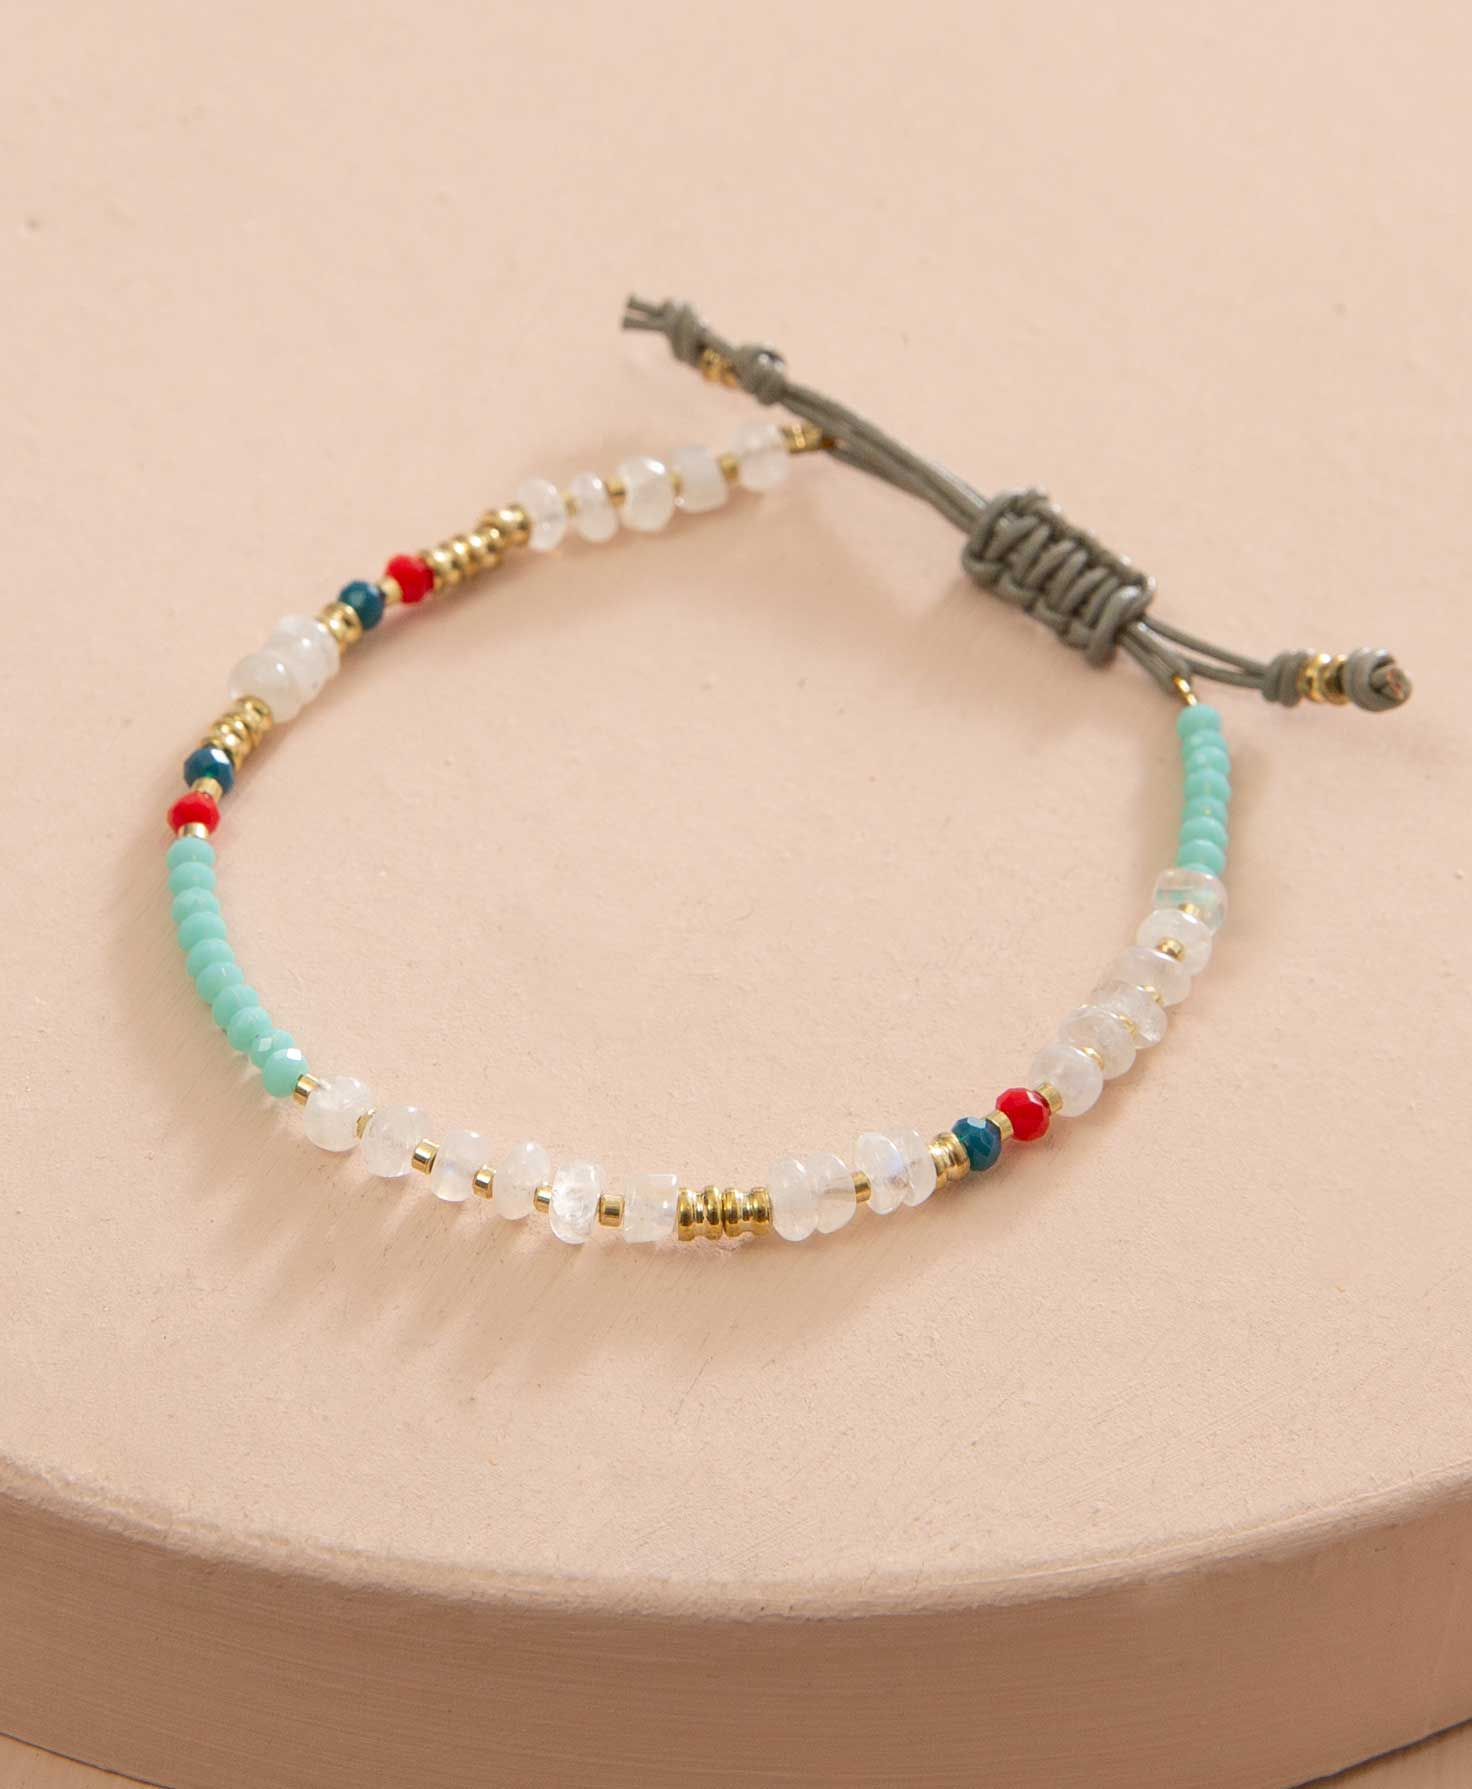 The Clarity Bracelet lays flat against a cream background. It features beads strung along a glossy grey leather cord that can be adjusted by pulling both ends. The cord is lined with an assortment of faceted moonstone beads, small brass beads, and faceted glass beads in shades of aqua, navy, and red.